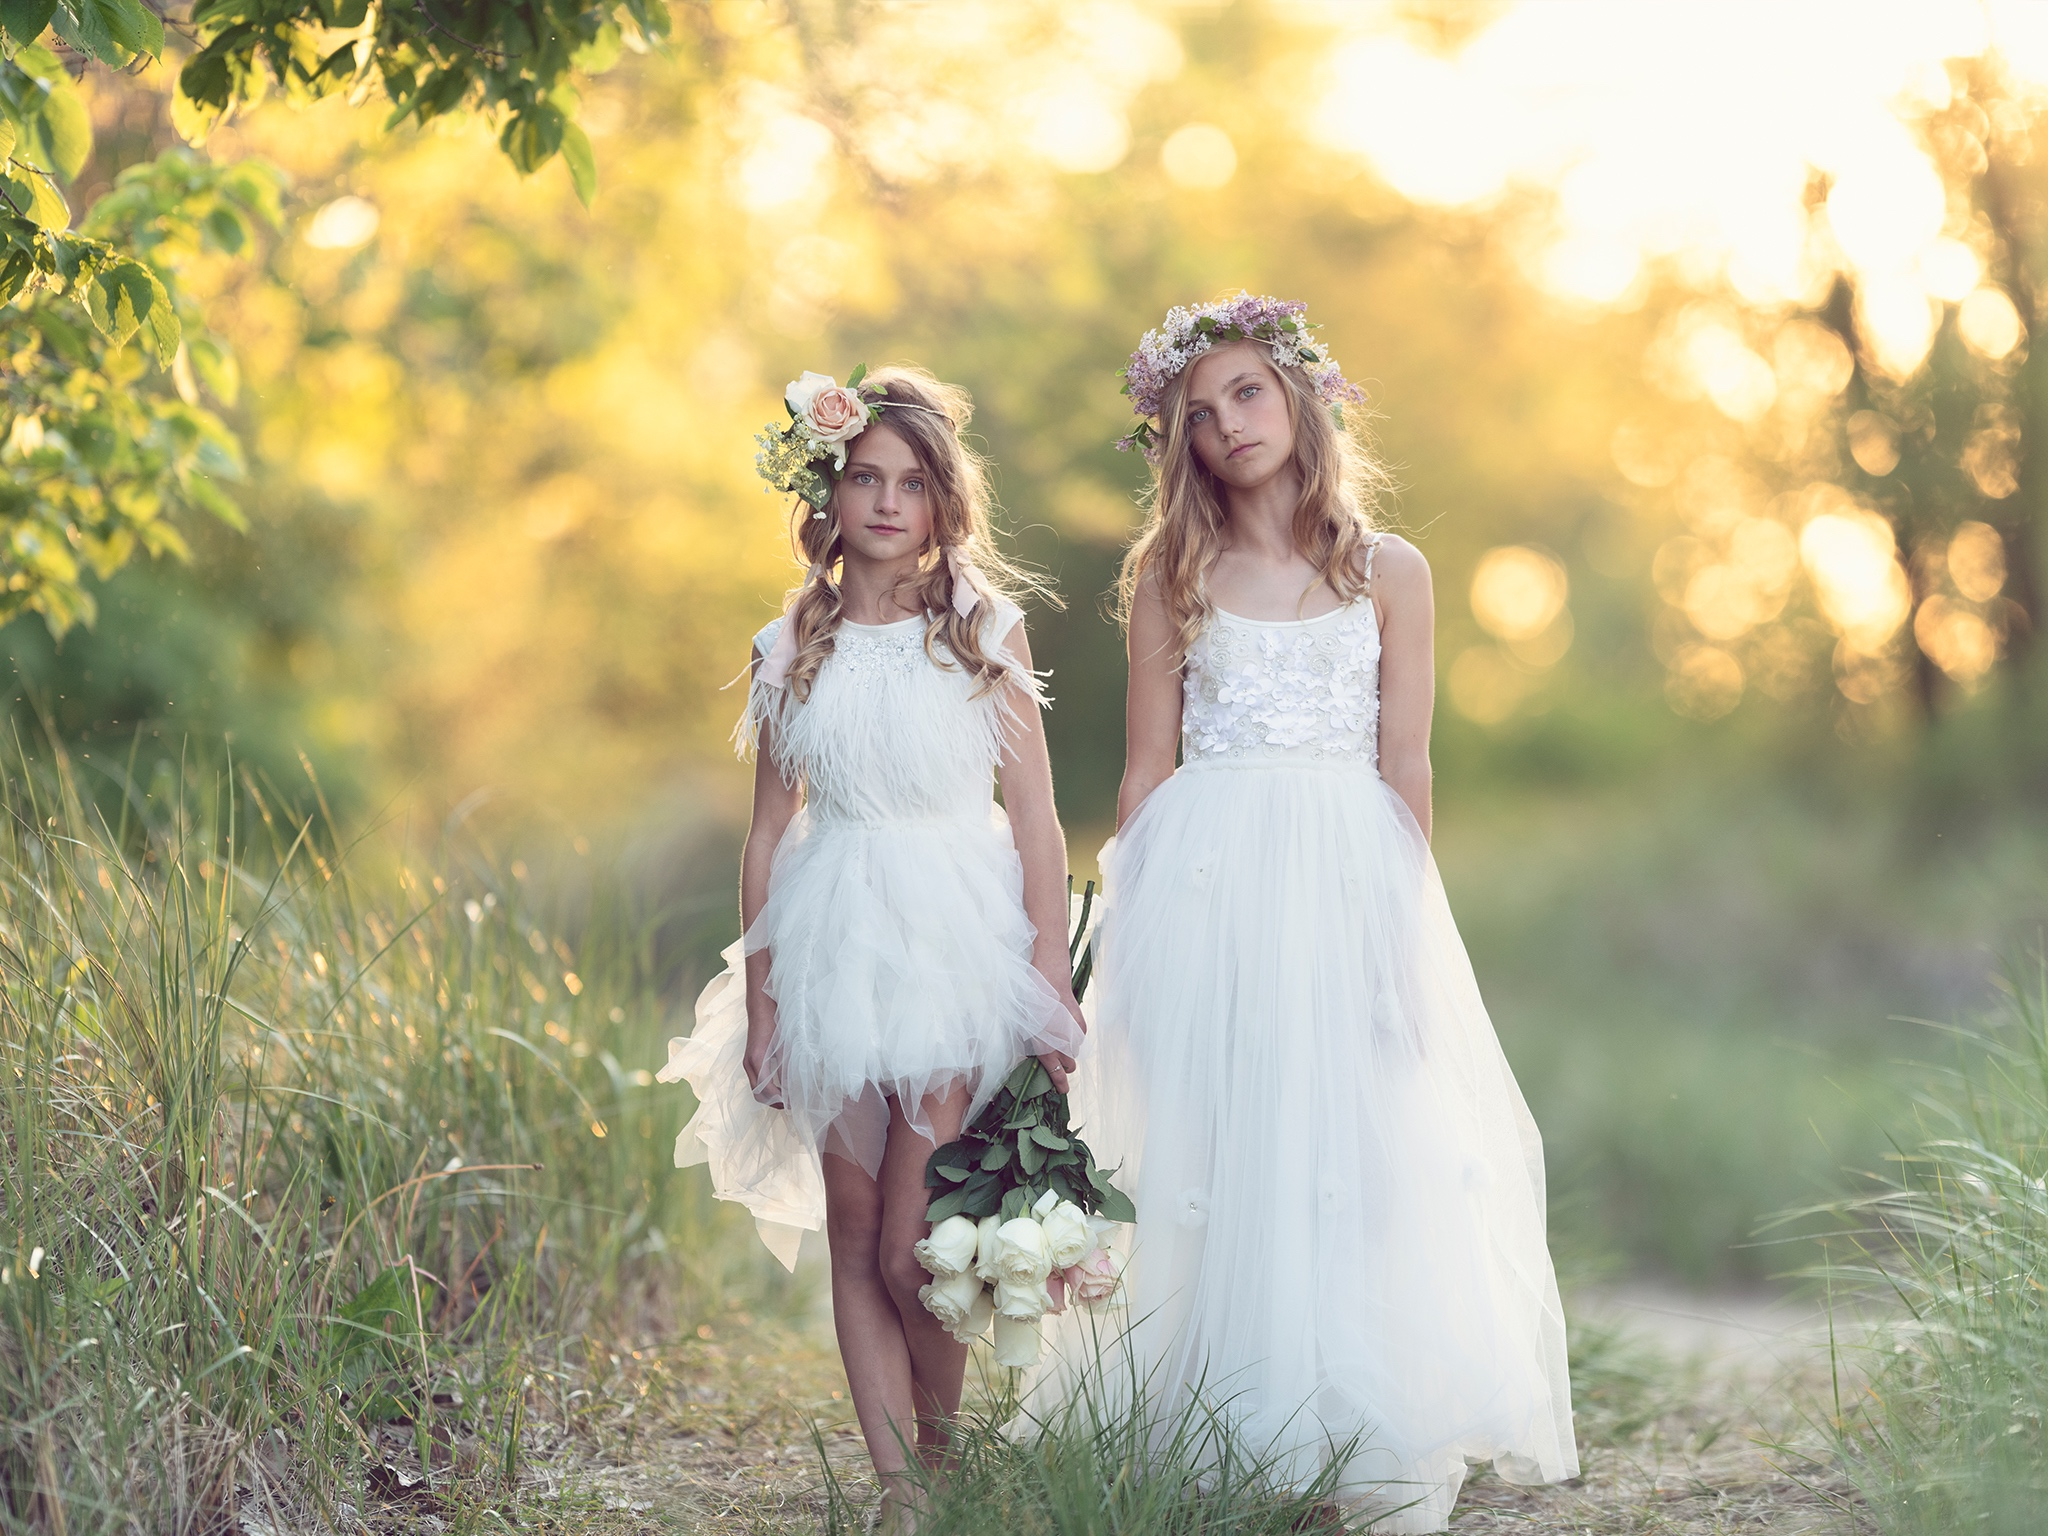 Flower girl dresses by Tutu Du Monde featured on LOVE FIND CO. Bridal Directory